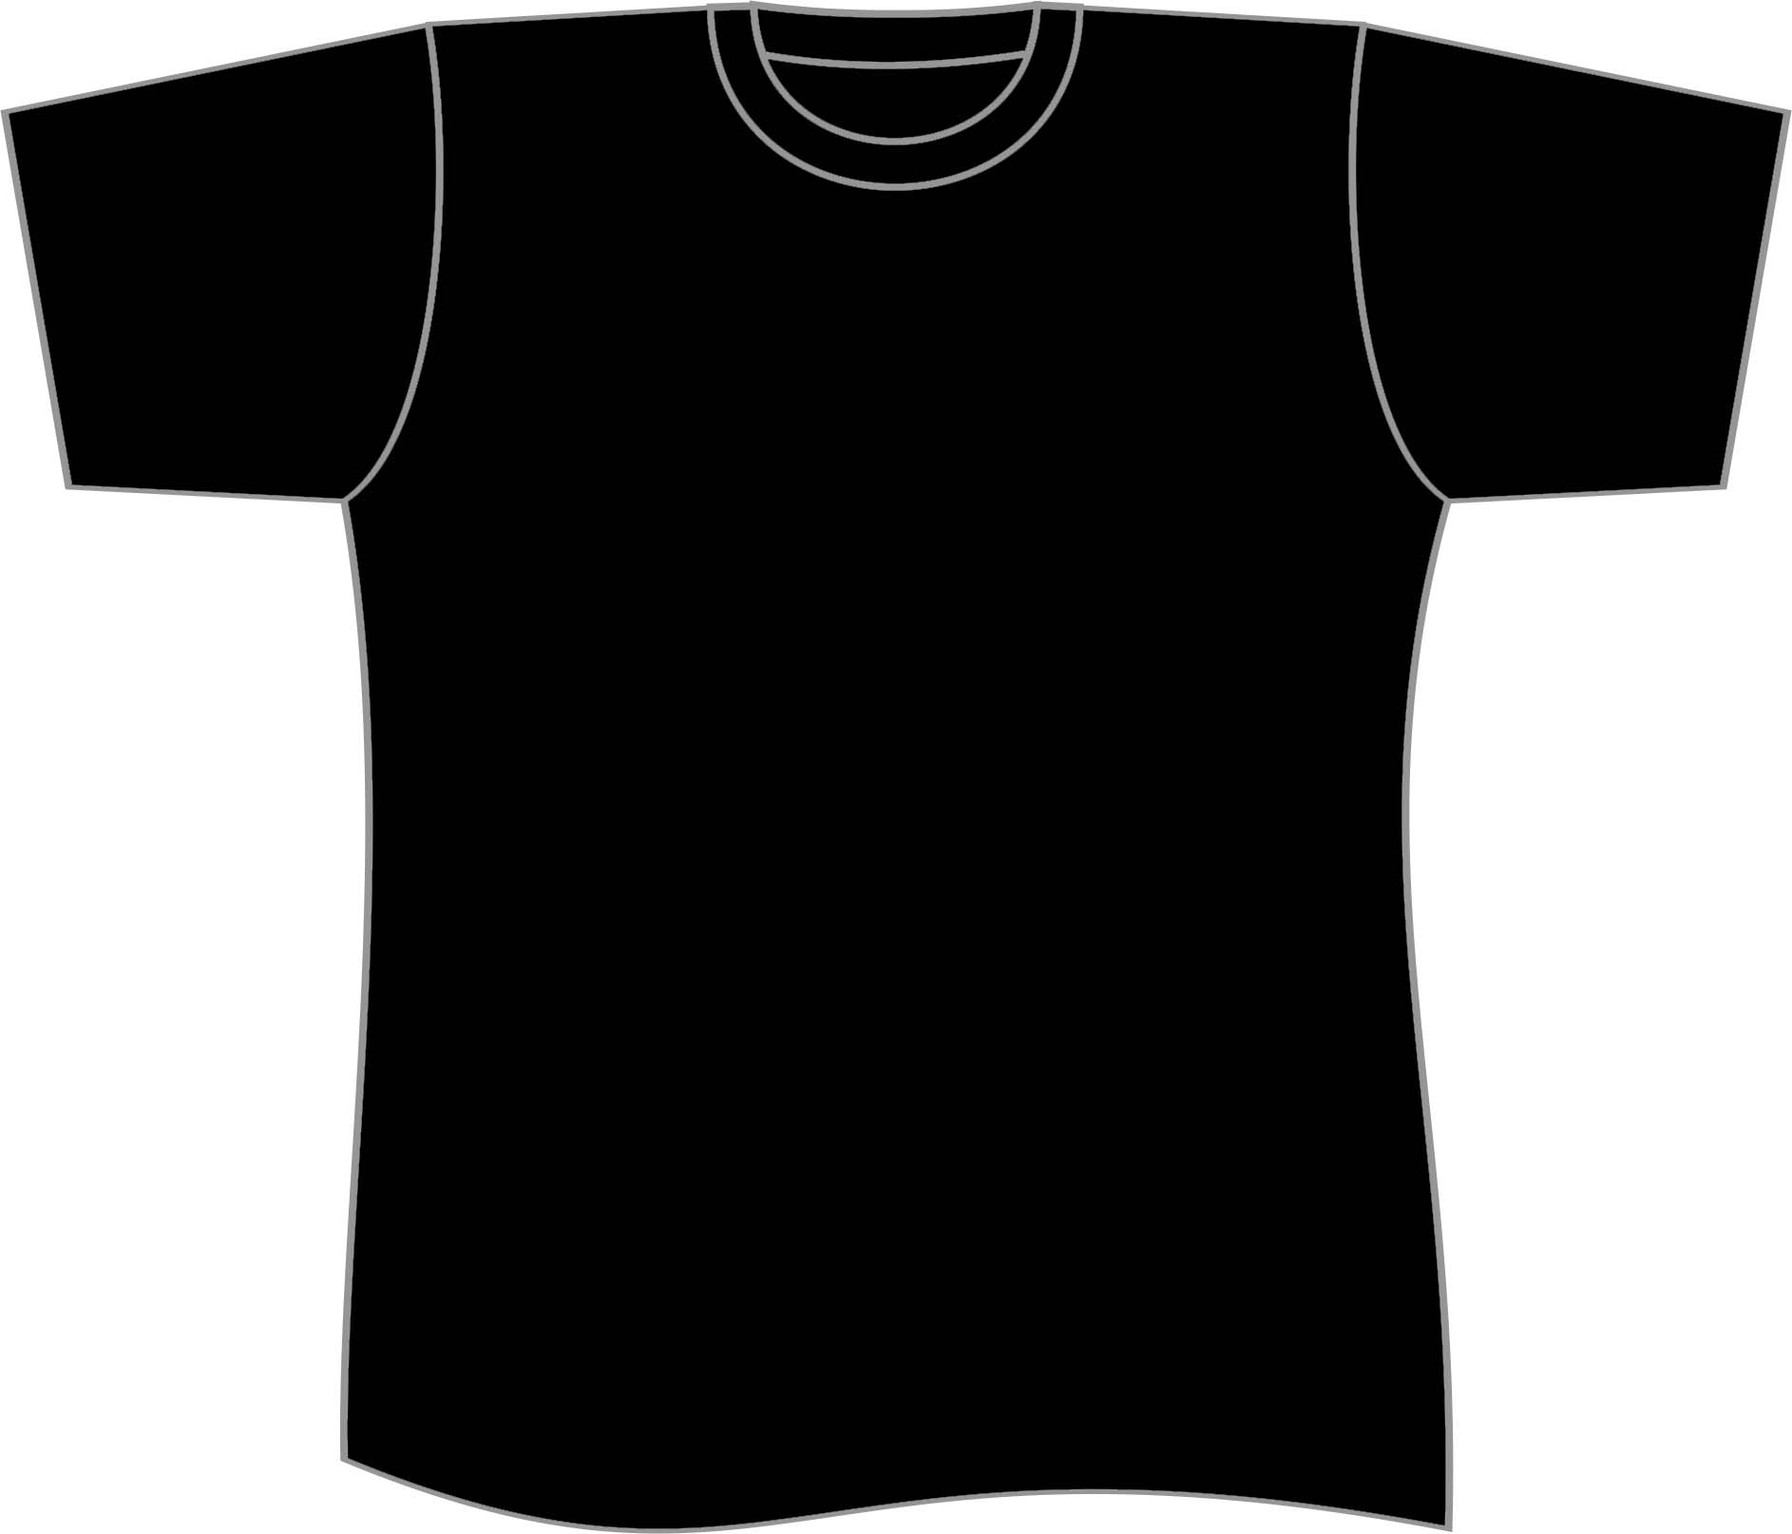 hight resolution of t shirt plain black shirt template clipart free to use clip art resource